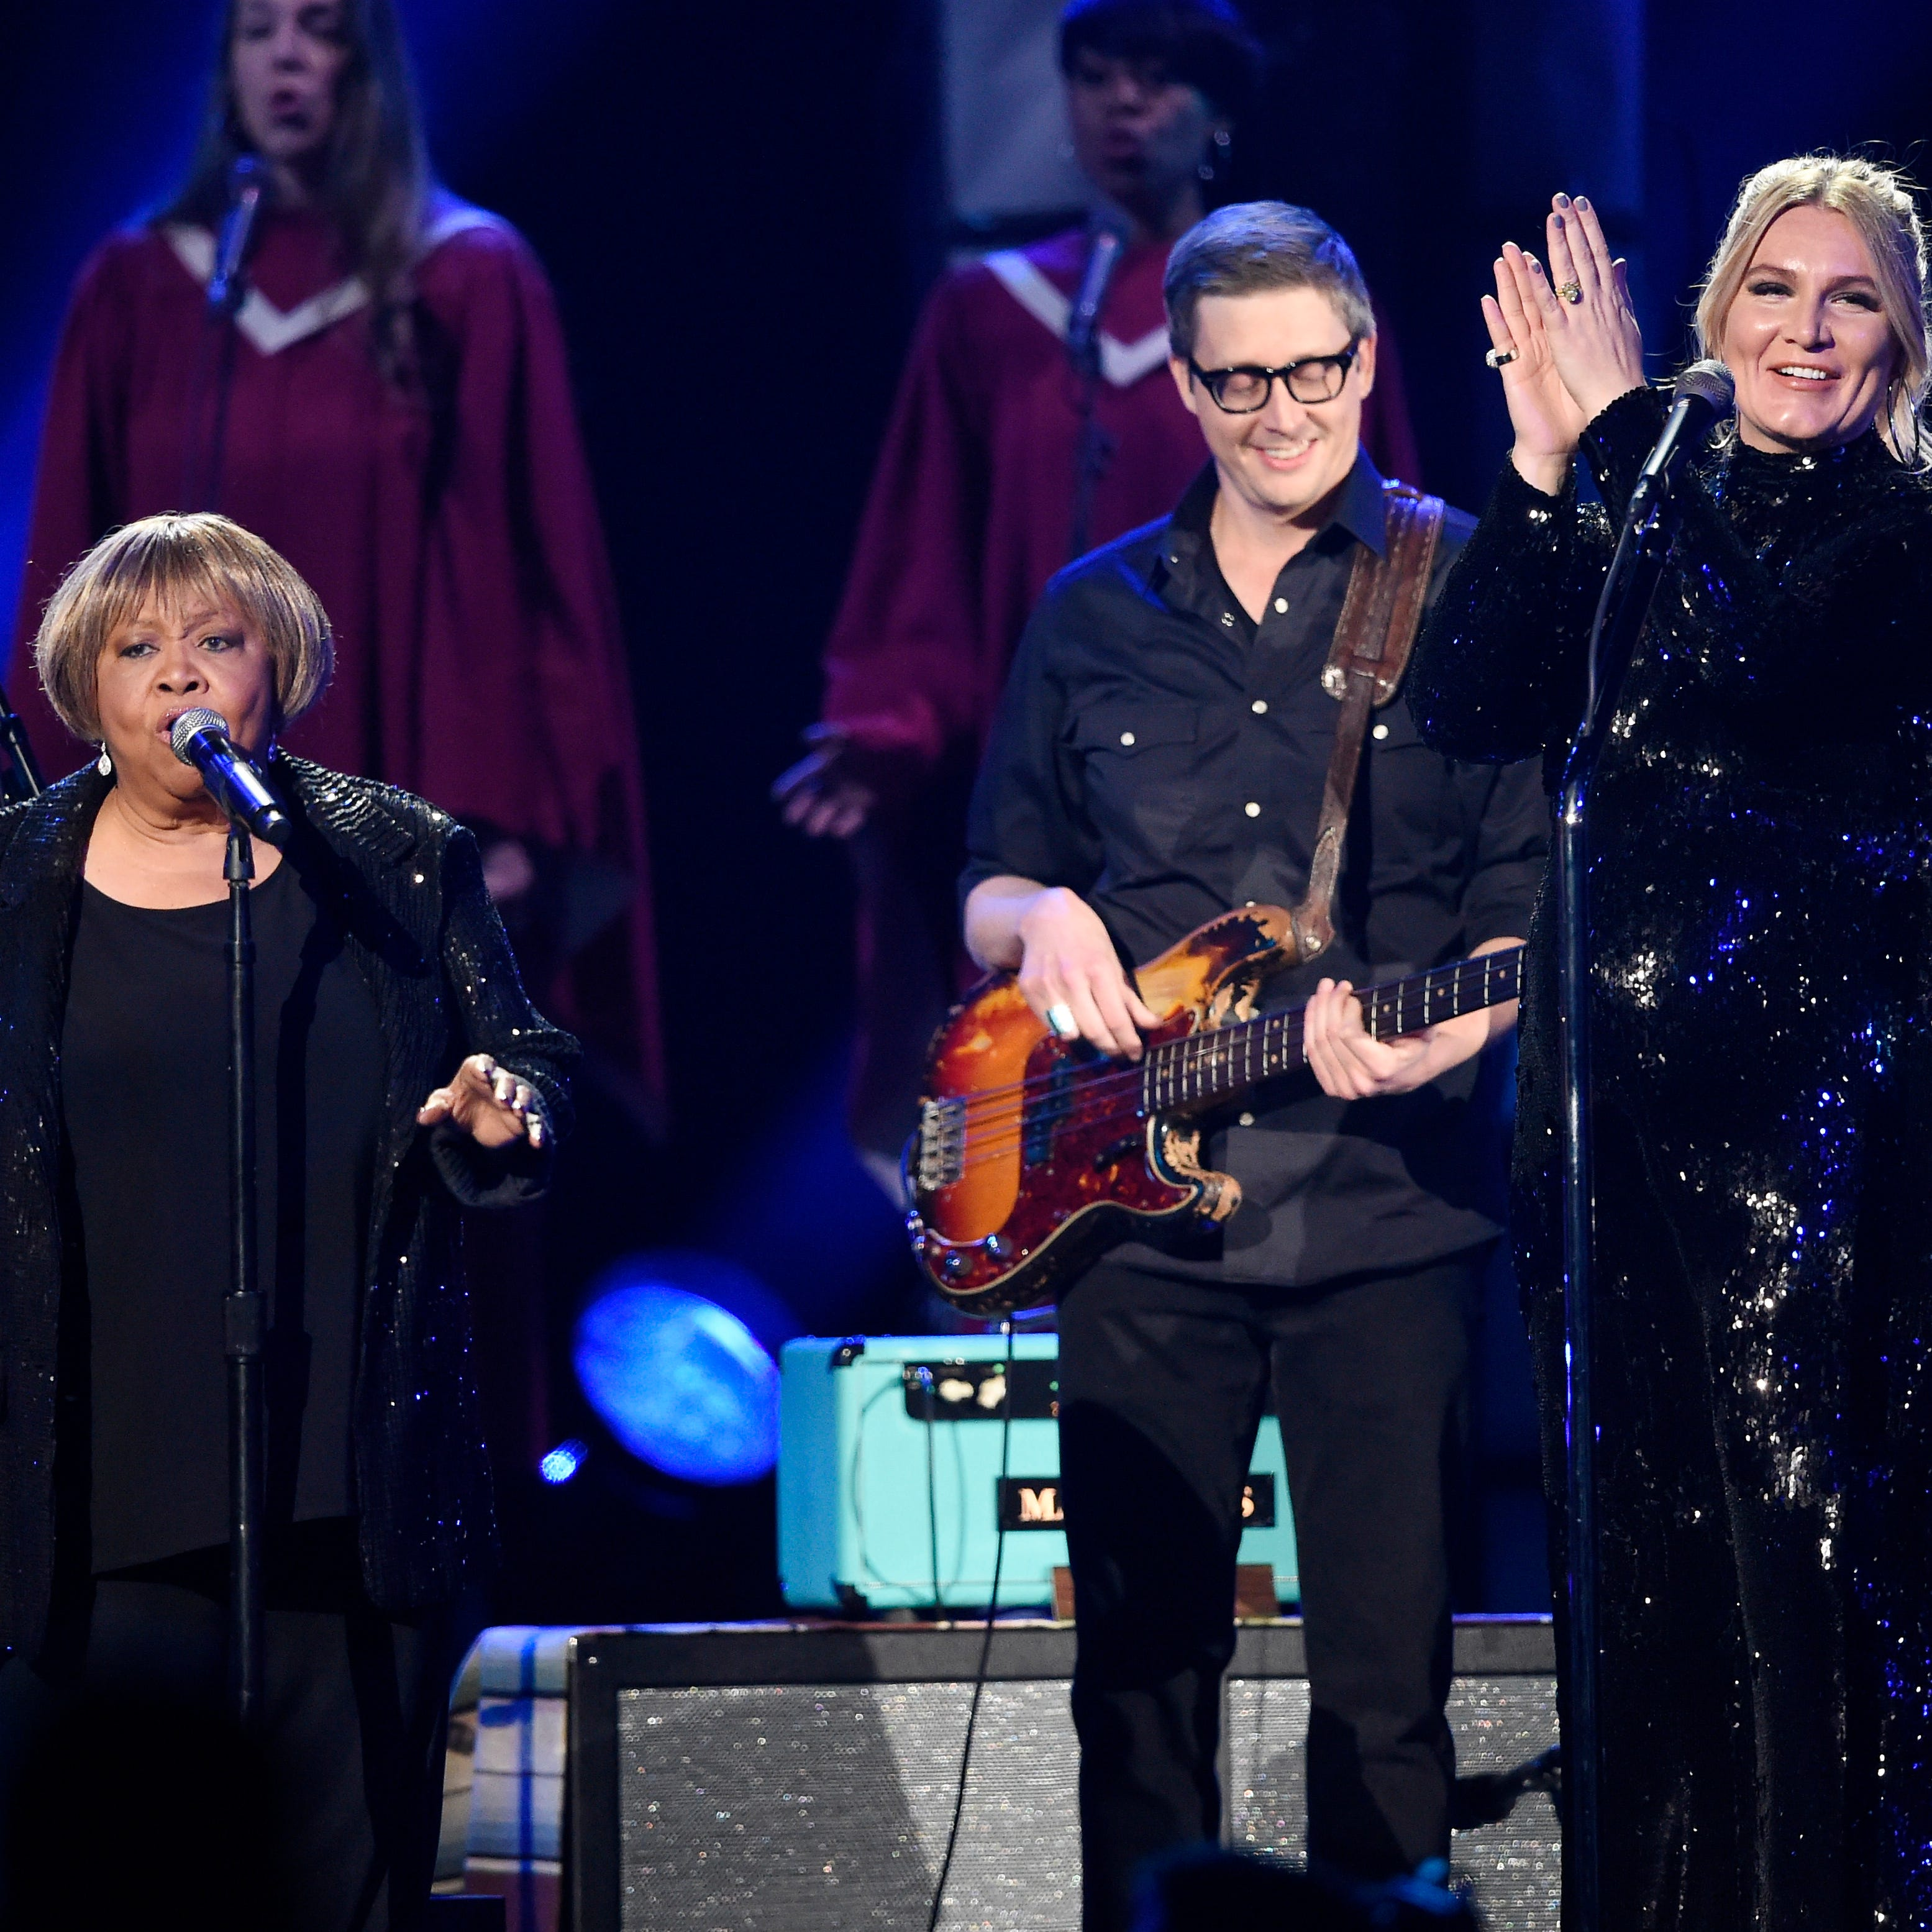 CMA Awards 2018: Mavis Staples steals the show during performance with Chris Stapleton, Maren Morris